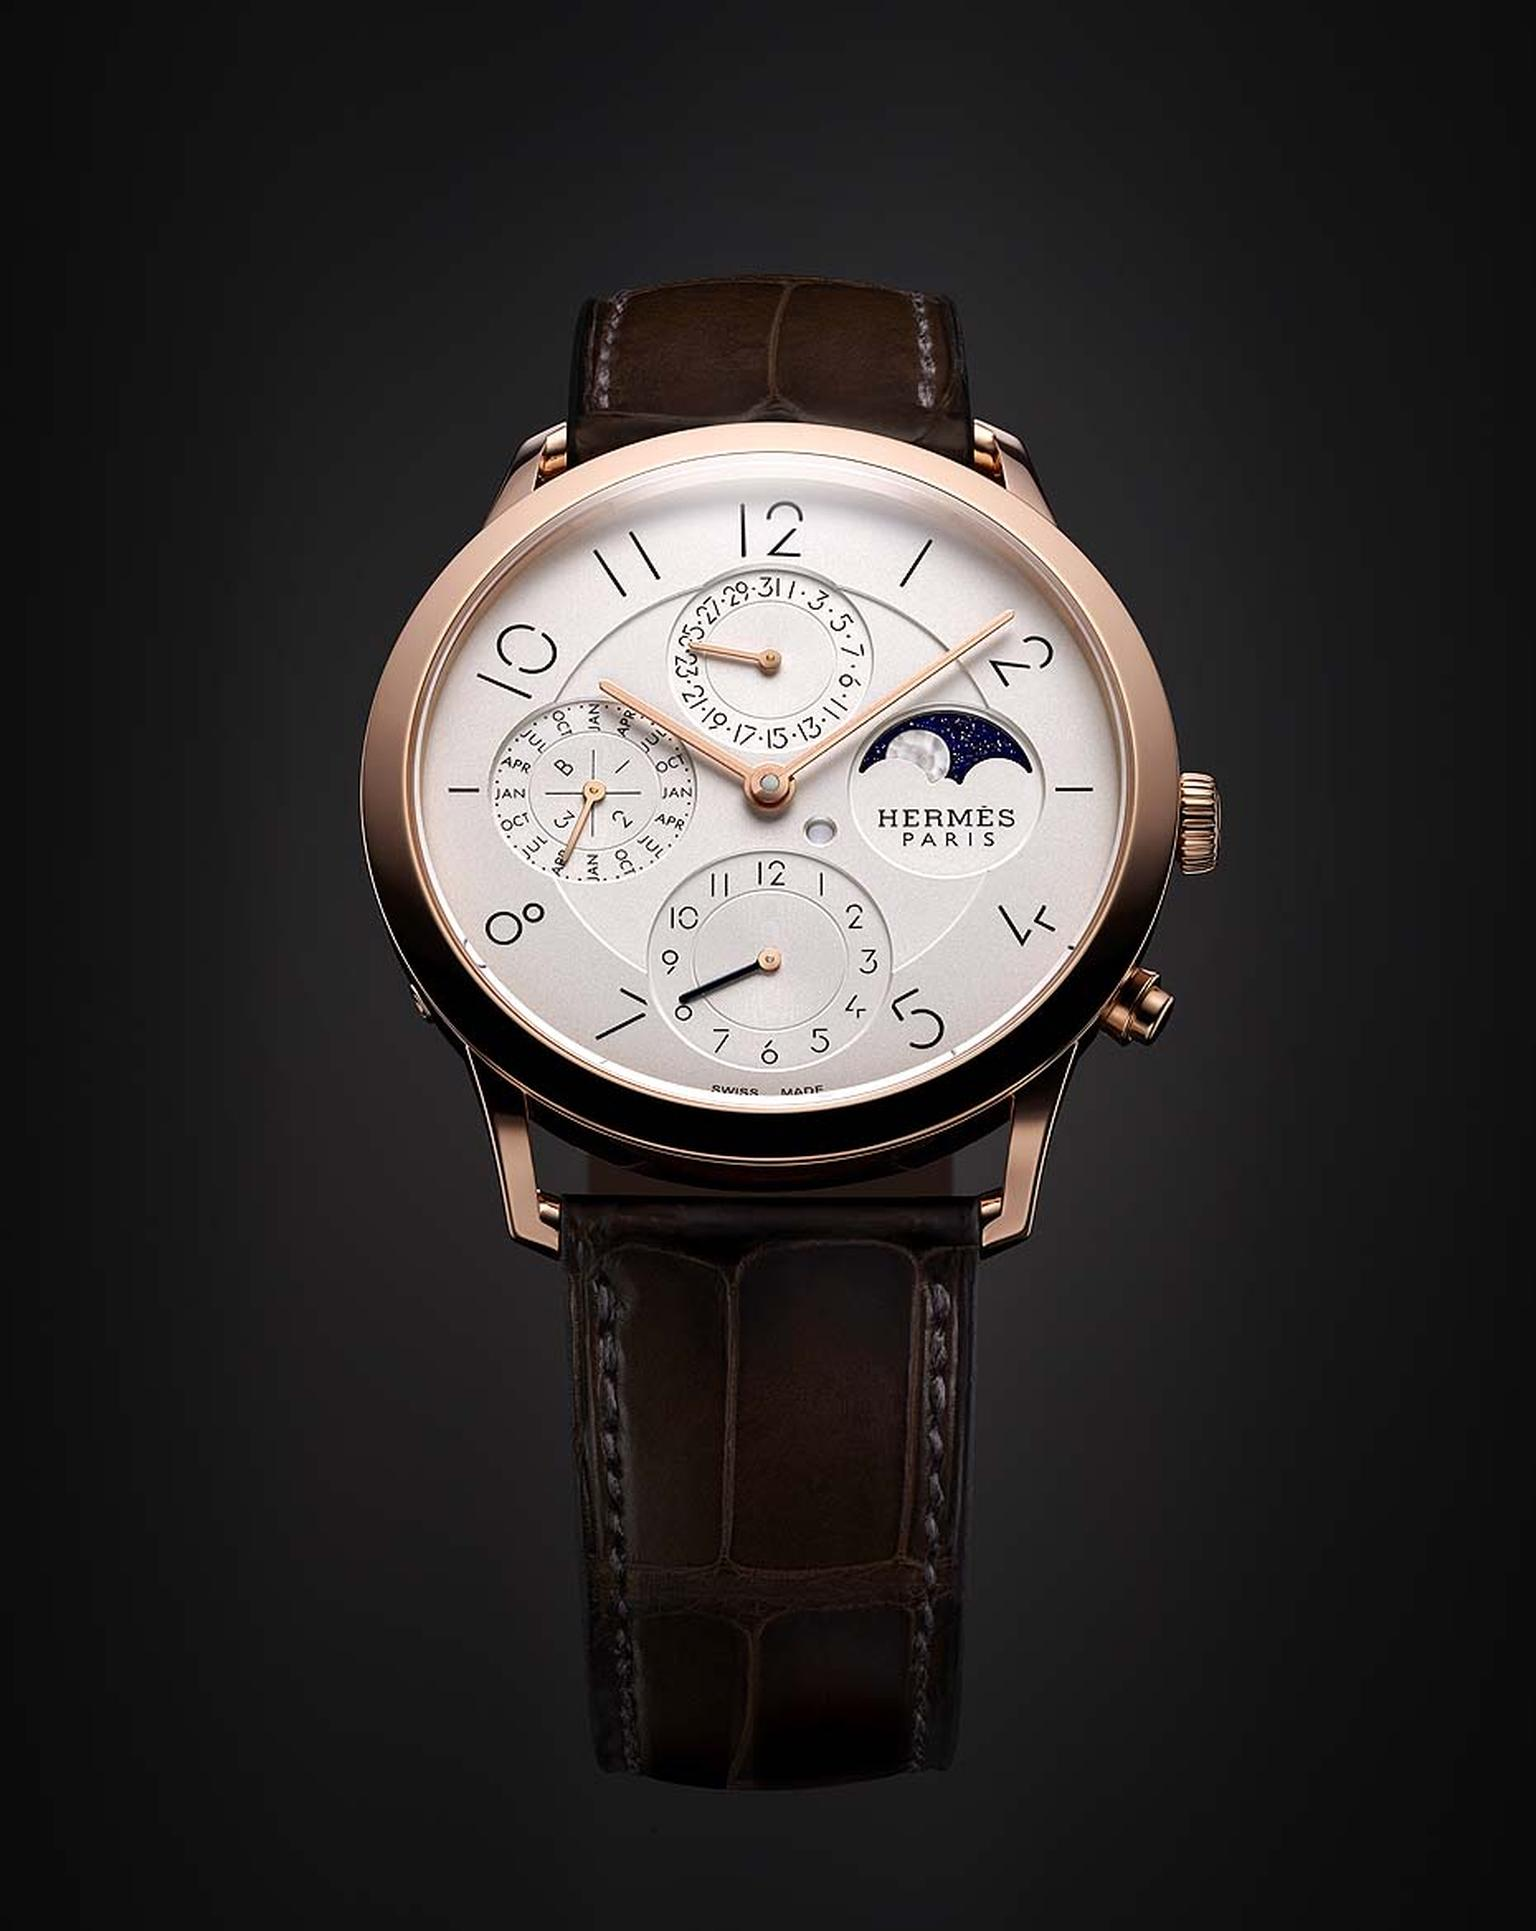 The elegant new Slim d'Hermès collection includes a perpetual calendar men's watch and a Moon phase function in milky mother-of-pearl set against an aventurine glass sky.